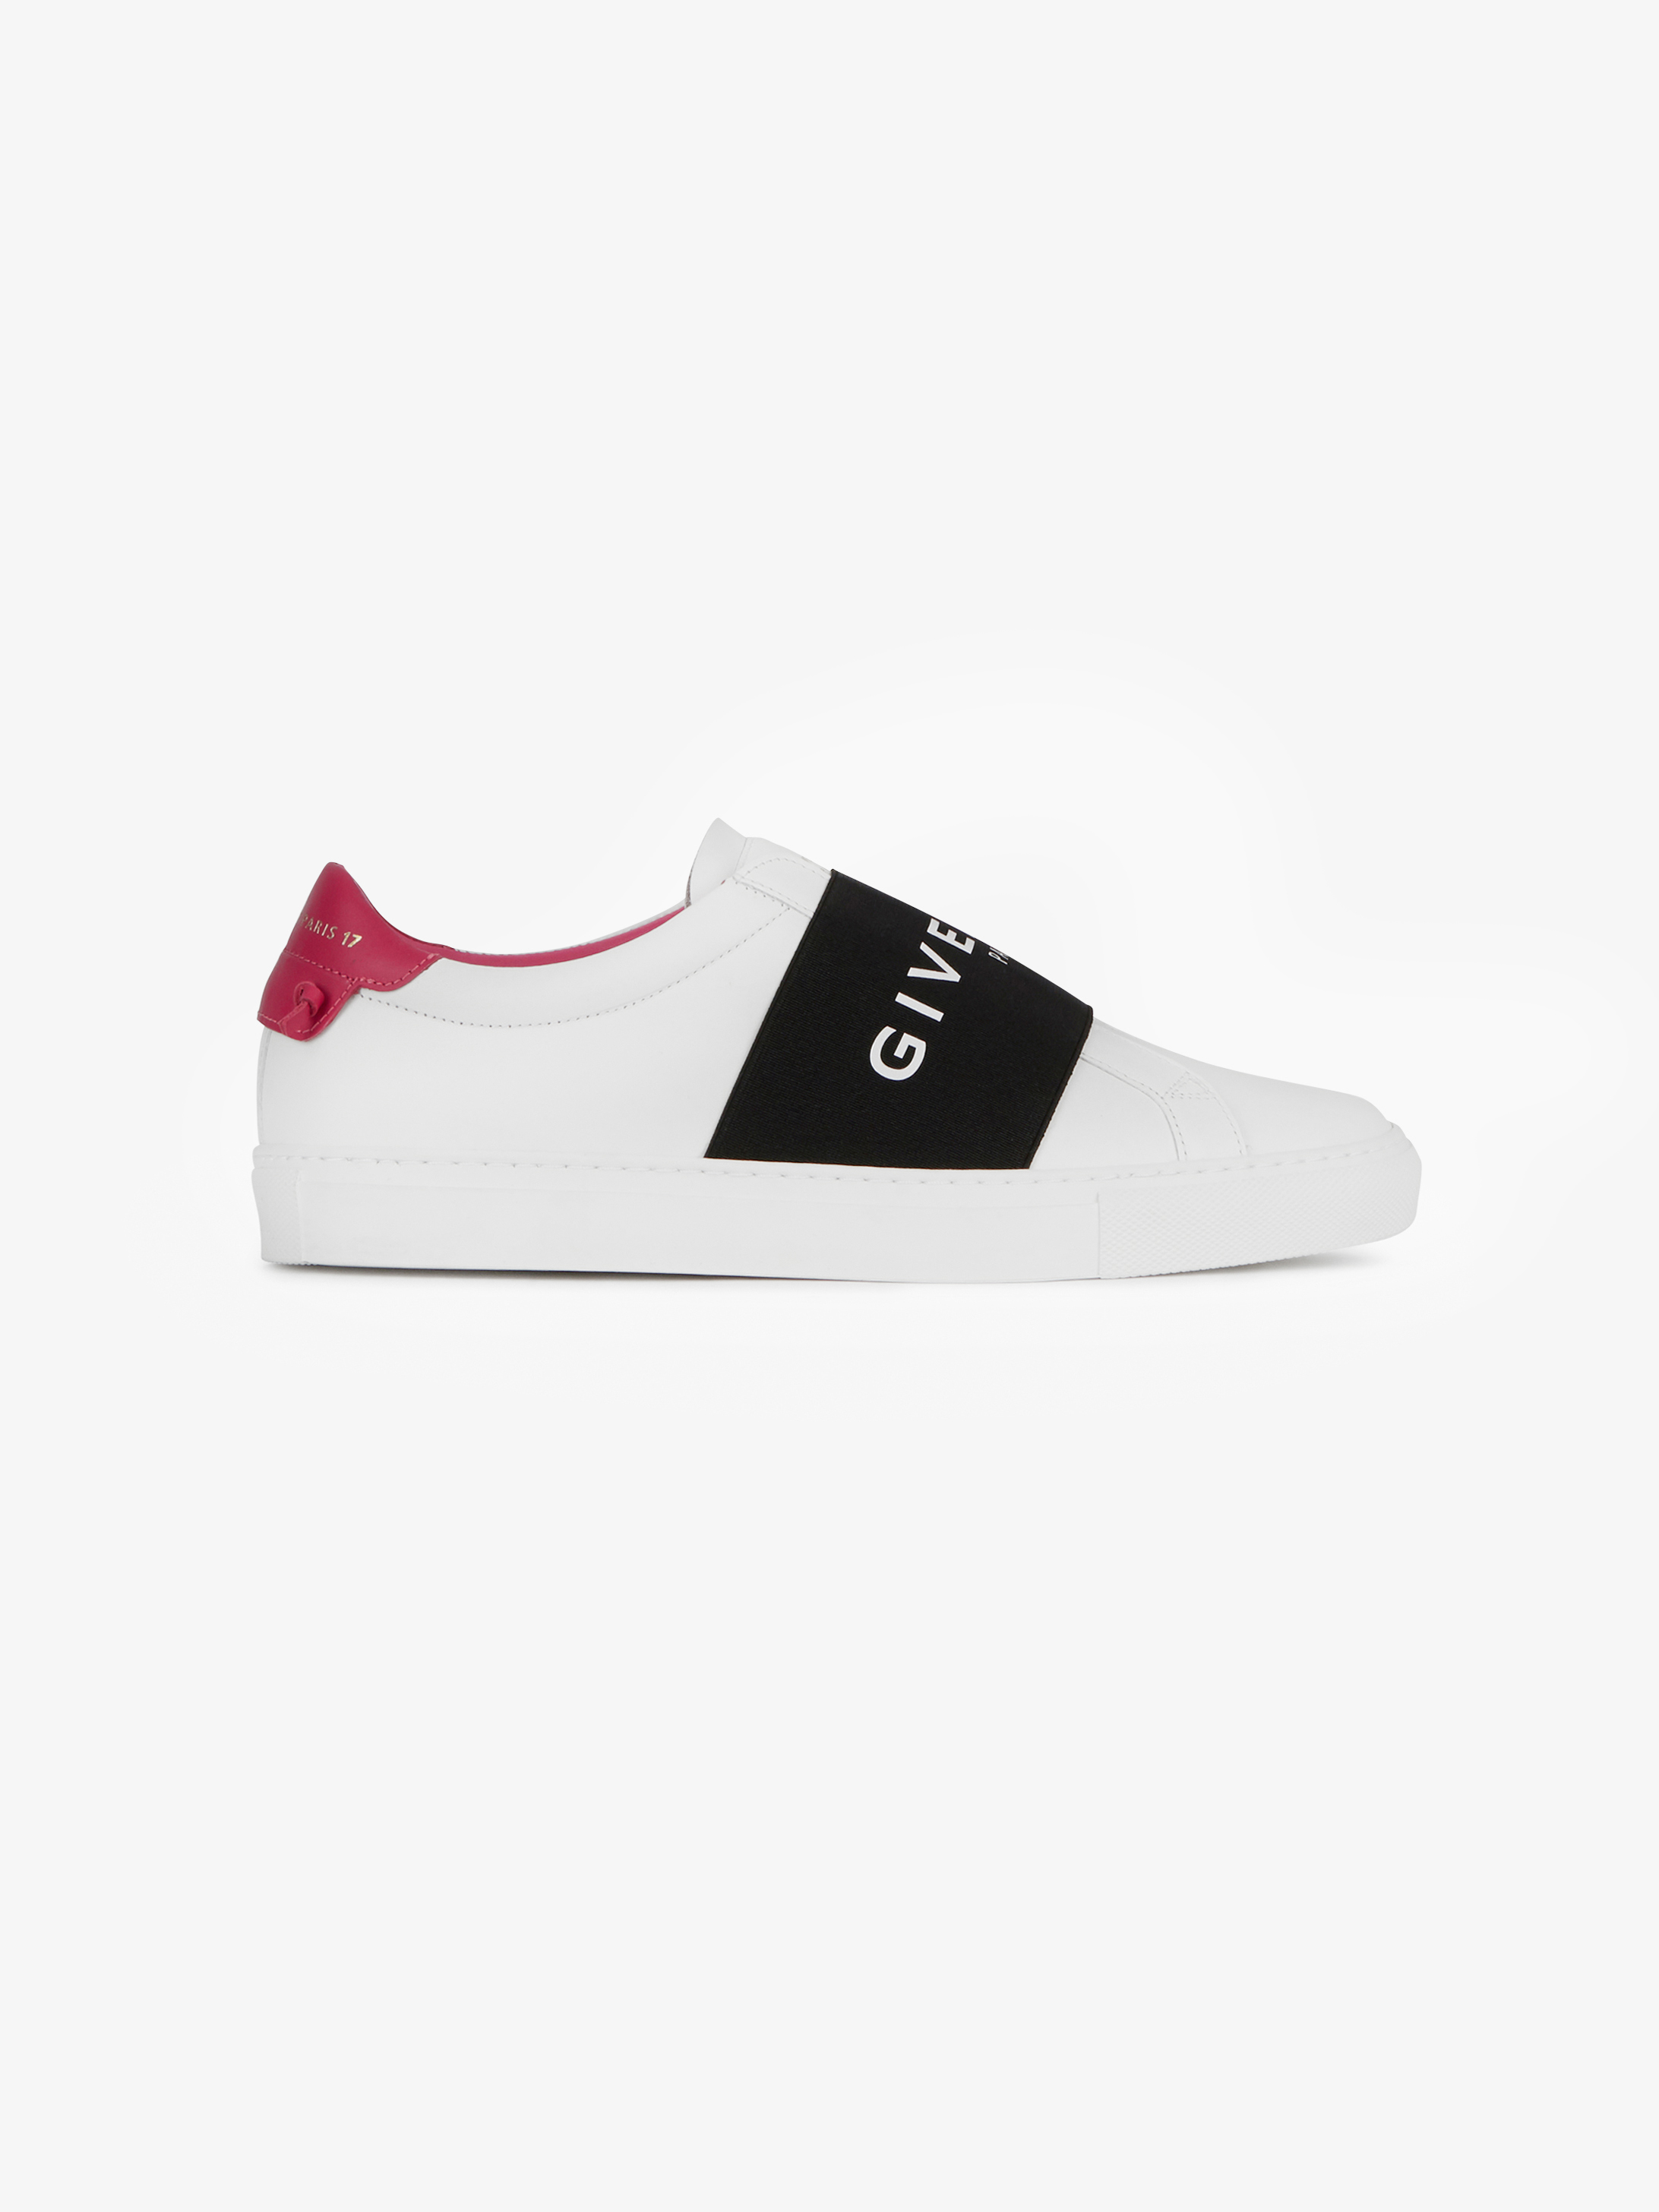 Leather sneakers with GIVENCHY PARIS